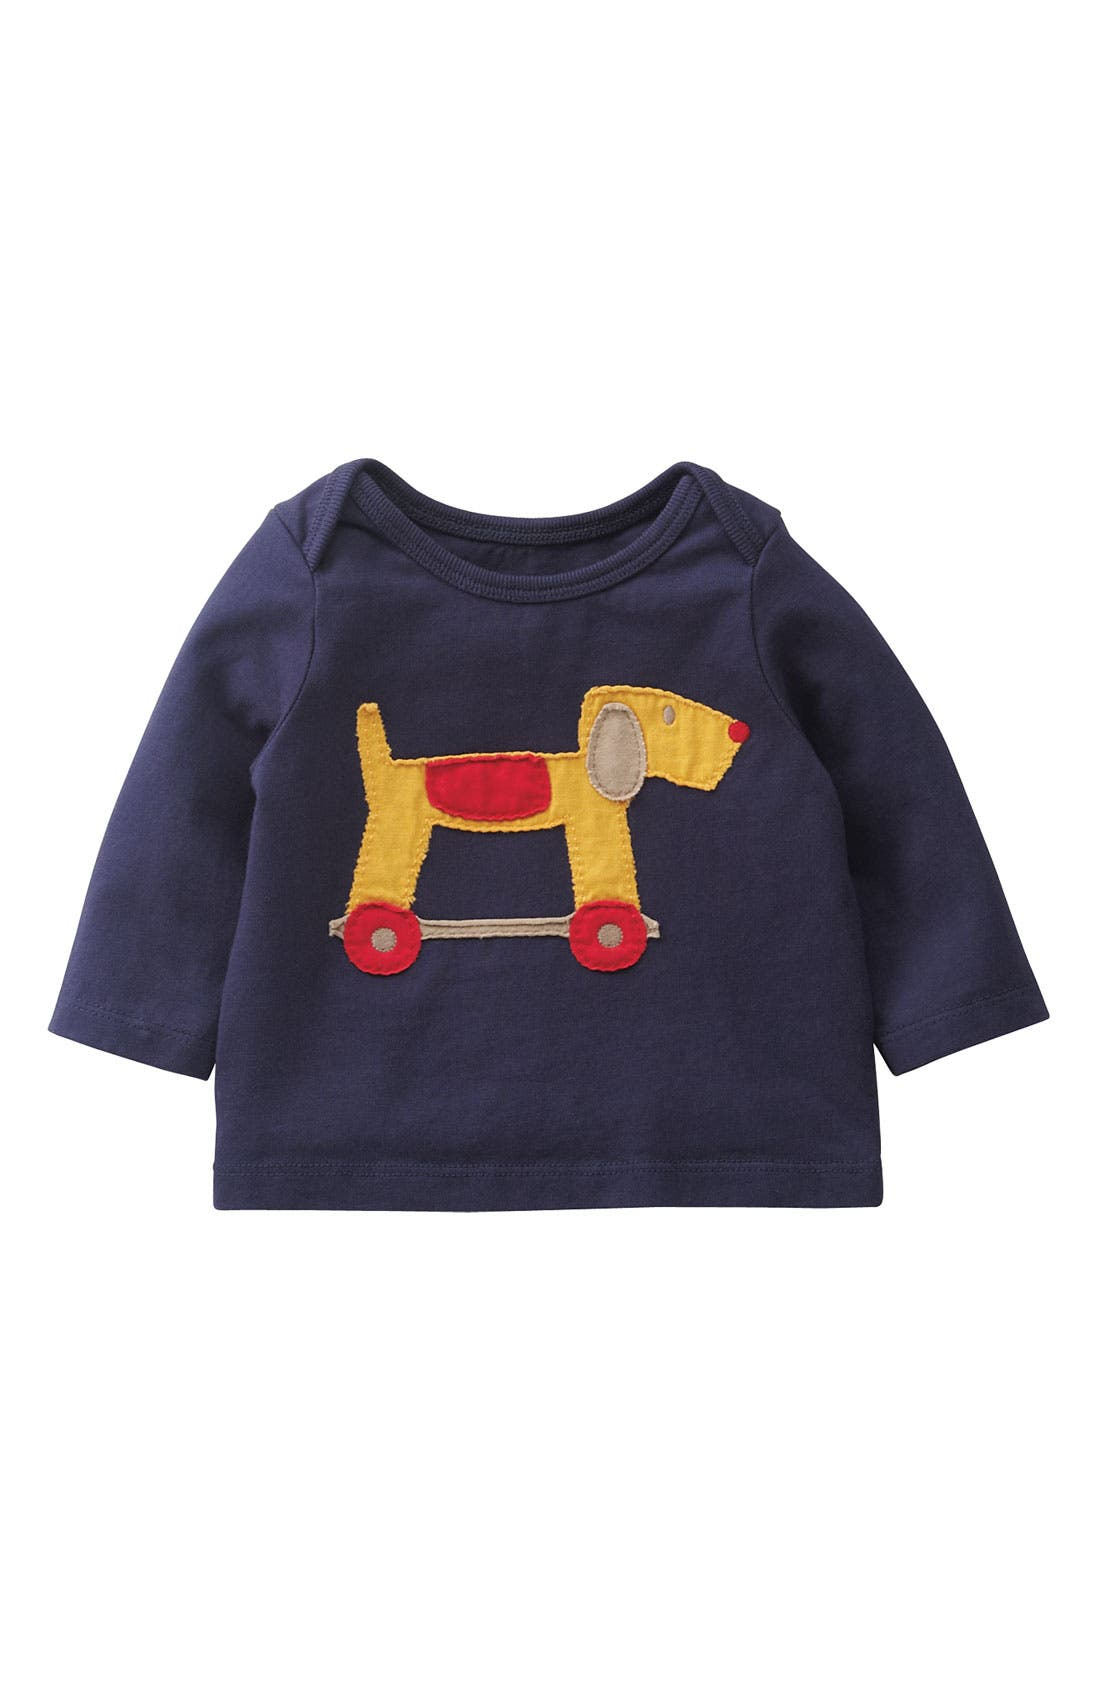 Alternate Image 1 Selected - Mini Boden Appliqué T-Shirt (Infant)